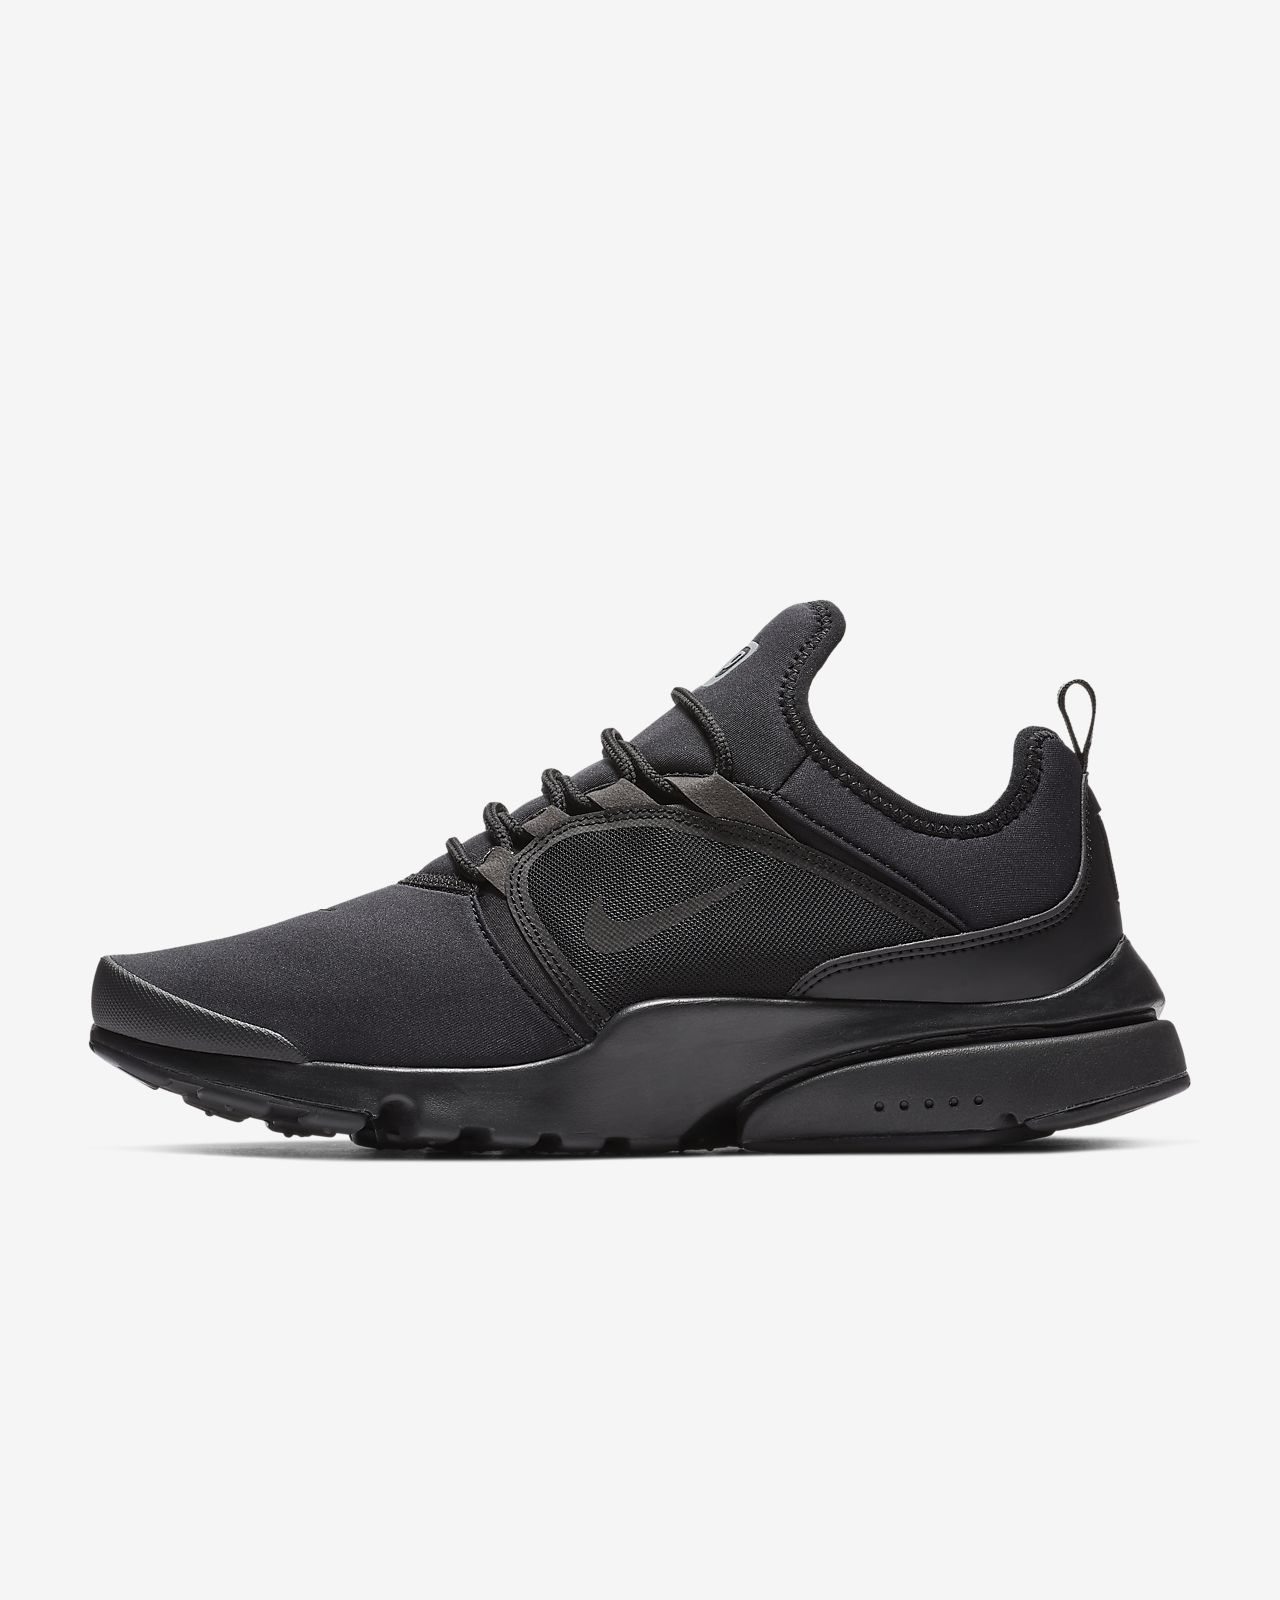 ffc04208f Nike Presto Fly World Men s Shoe. Nike.com LU